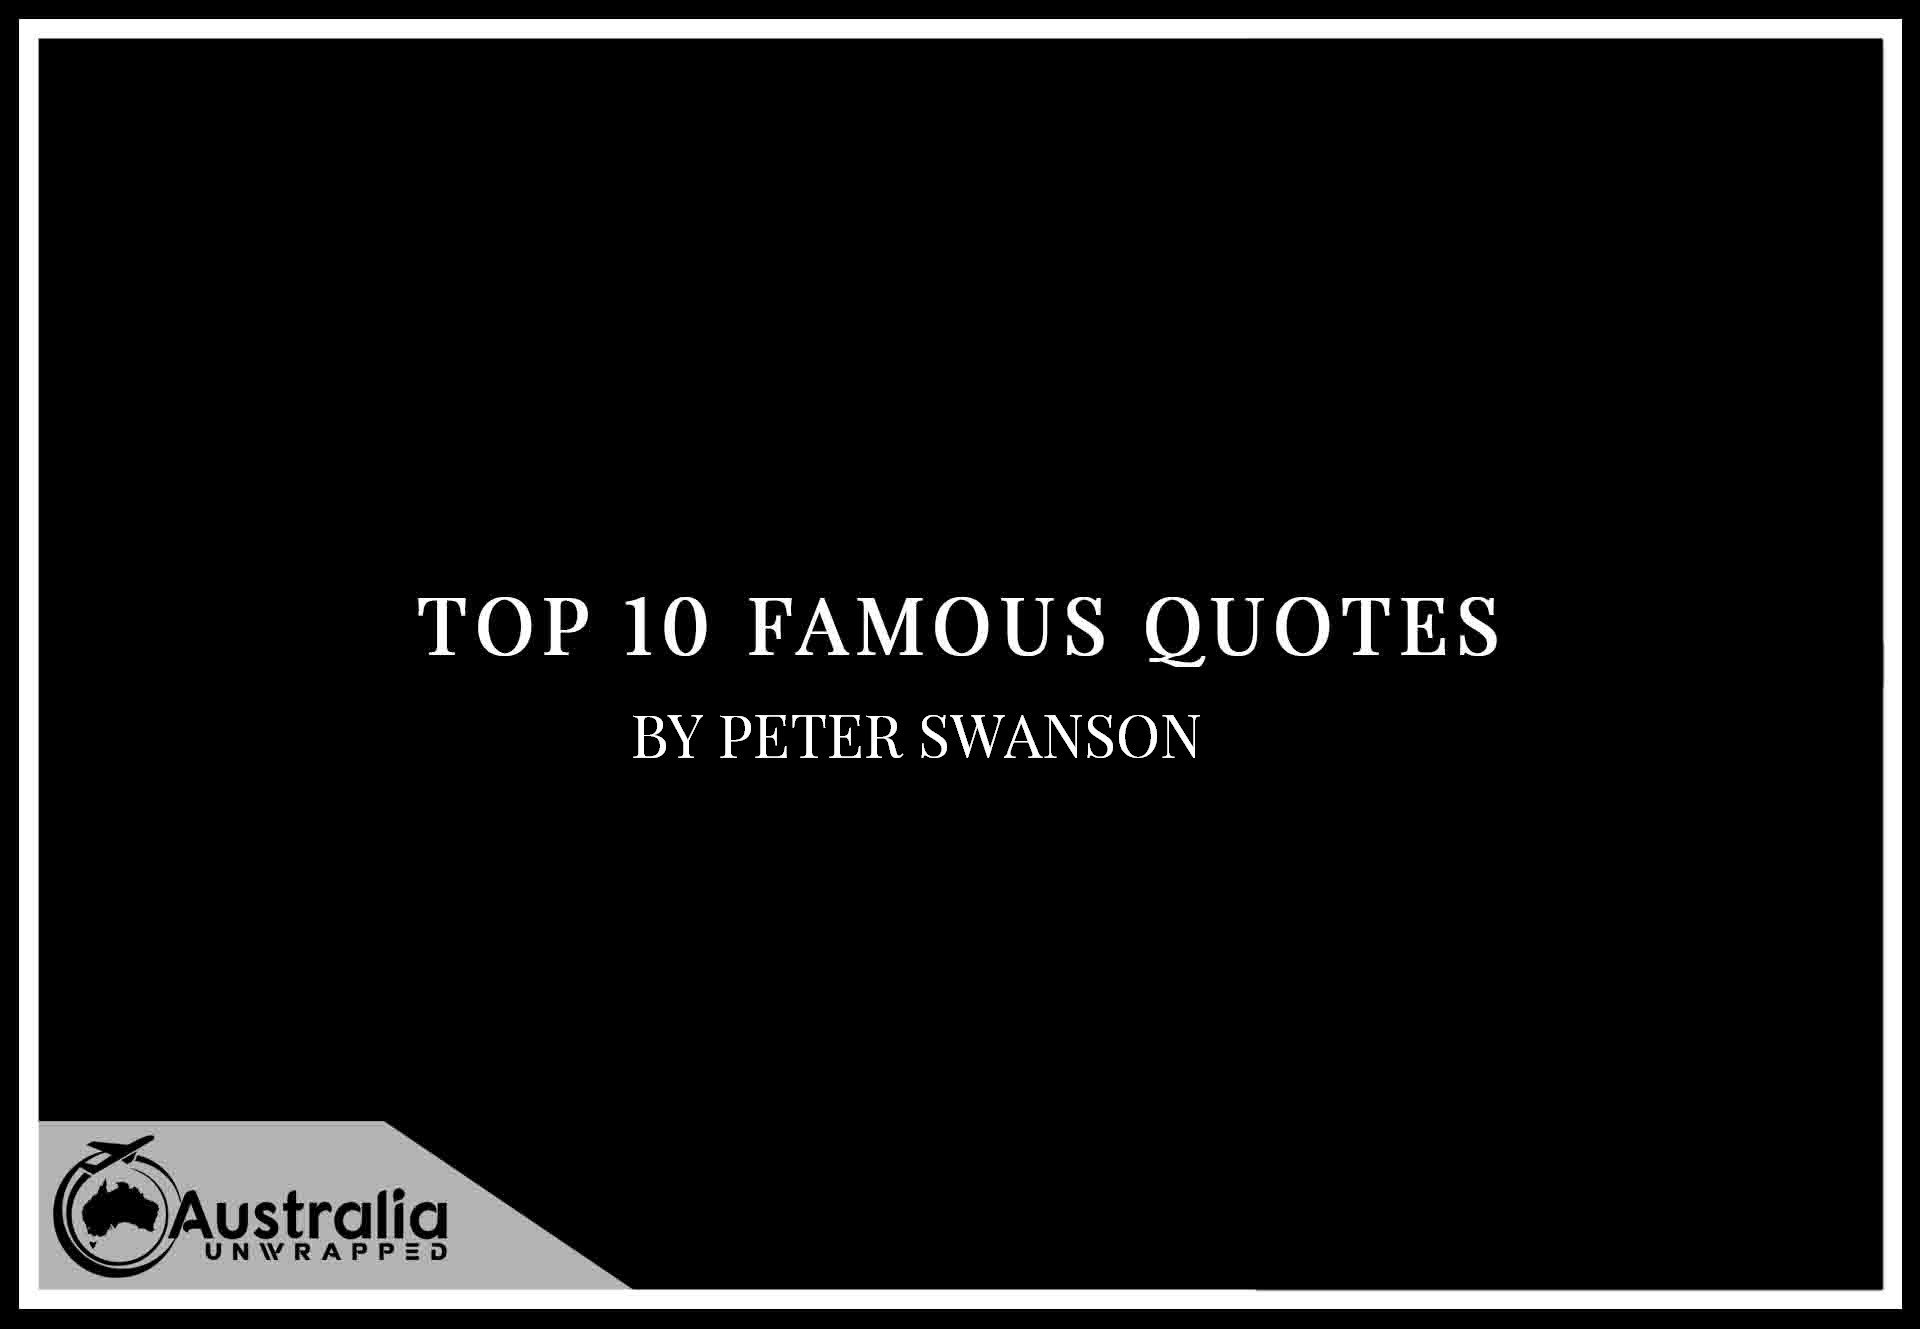 Top 10 Famous Quotes by Author PETER SWANSON